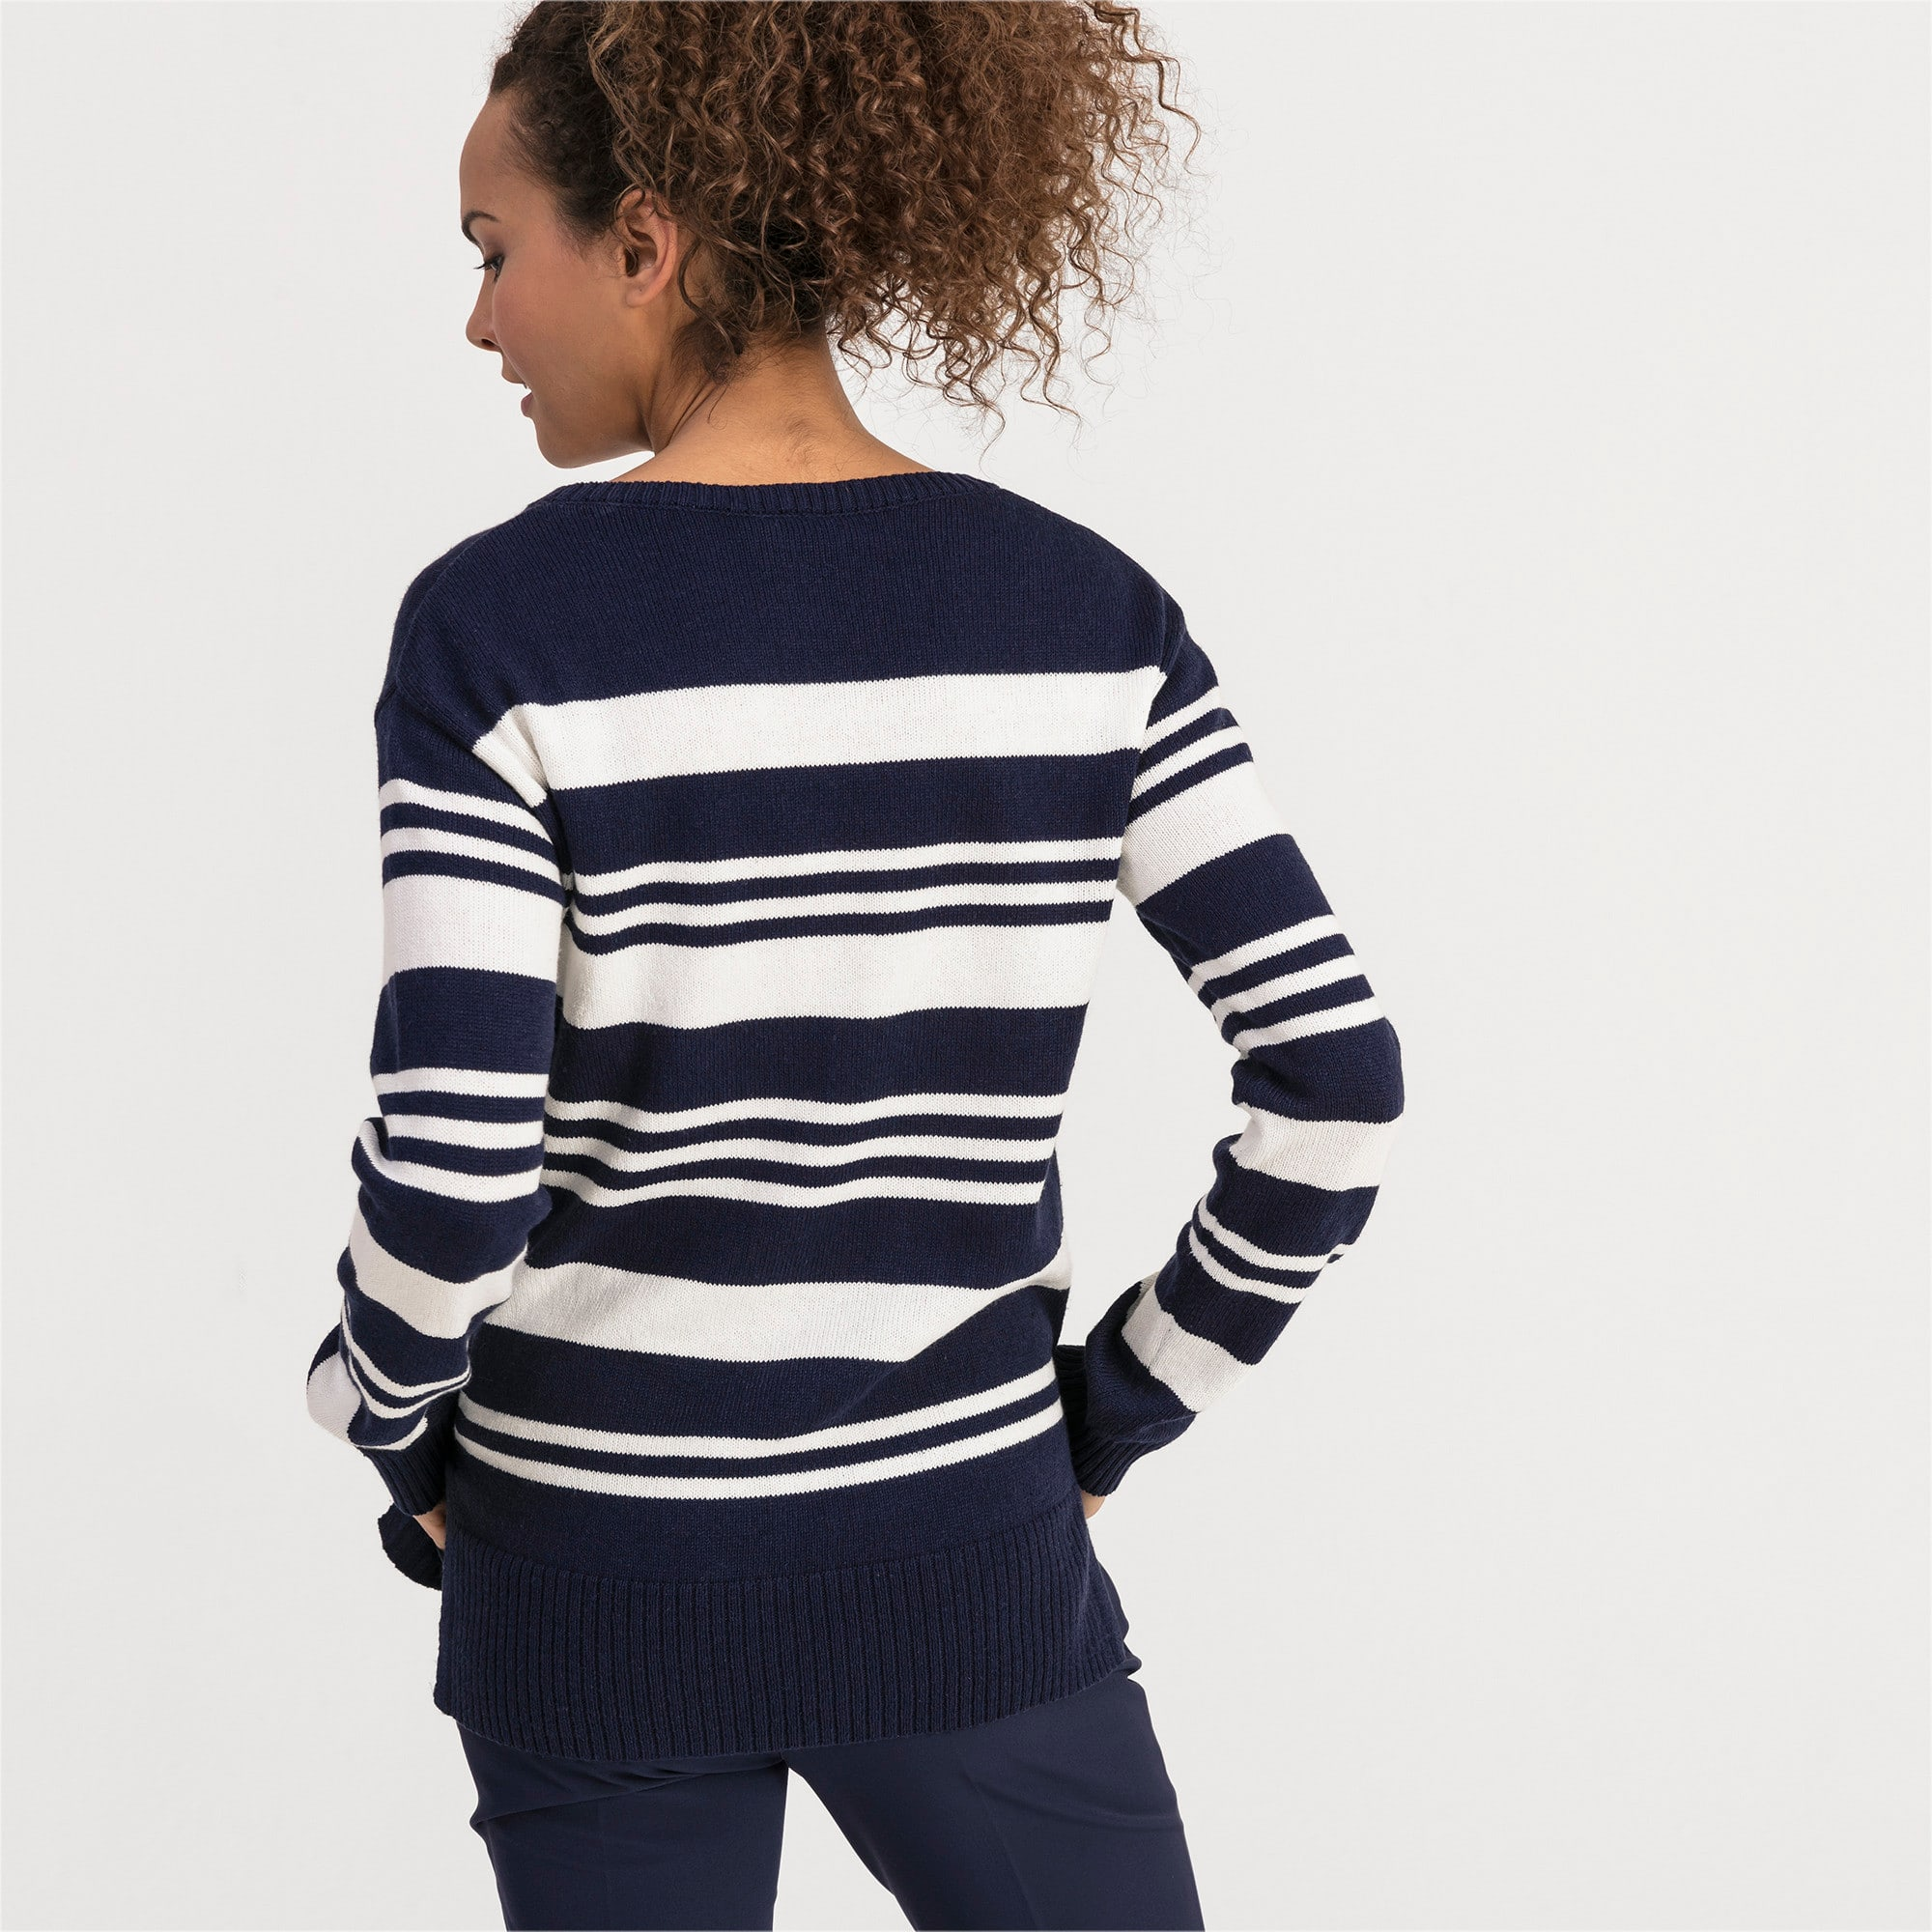 Thumbnail 2 of Damen Golf Sweatshirt, Peacoat, medium